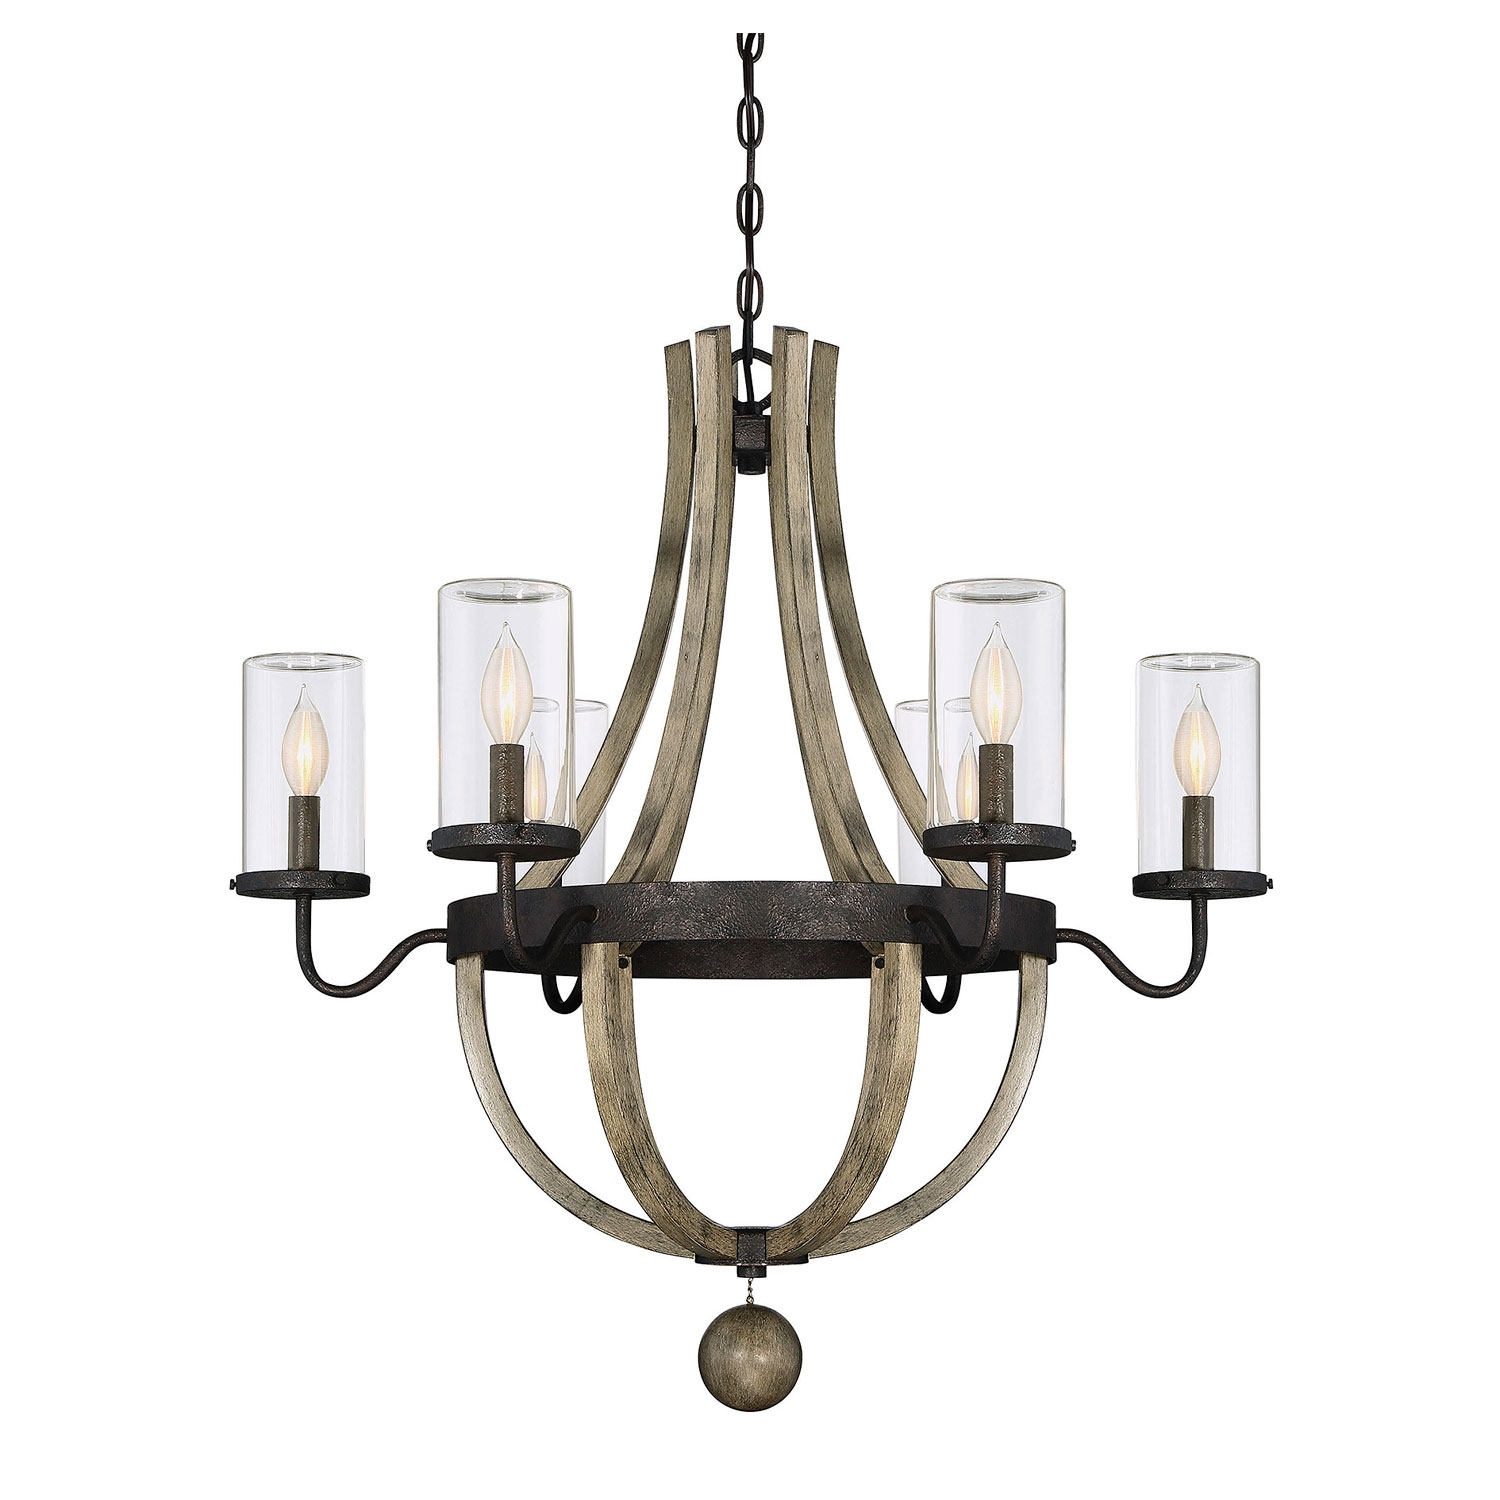 Outdoor Hanging Lights On Sale | Bellacor With Hanging Outdoor Light On Rod (#12 of 16)